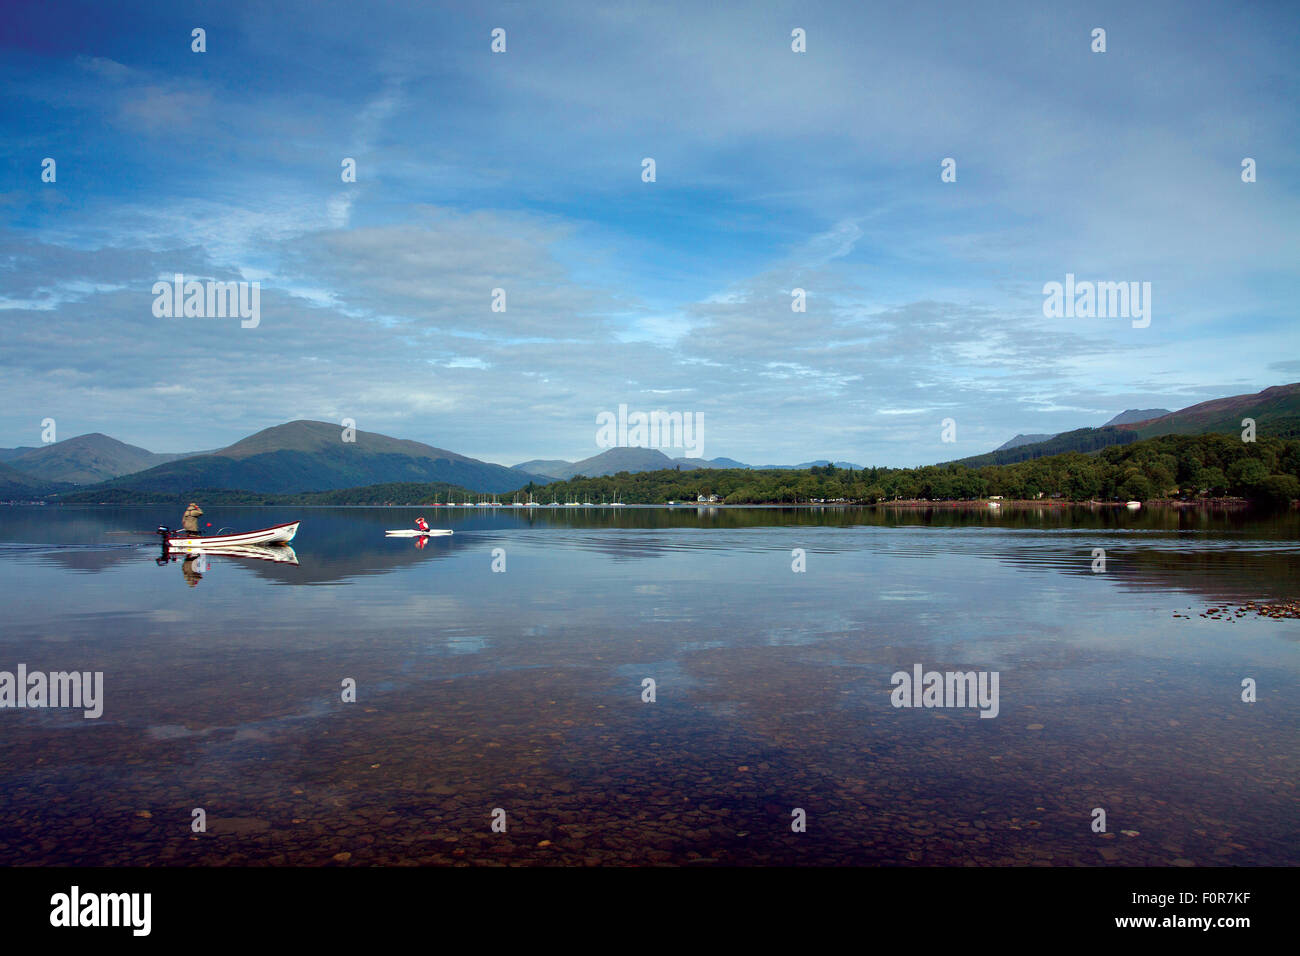 Loch Lomond and the Luss Hills from Milarrochy Bay, Loch Lomond and the Trossachs National Park - Stock Image